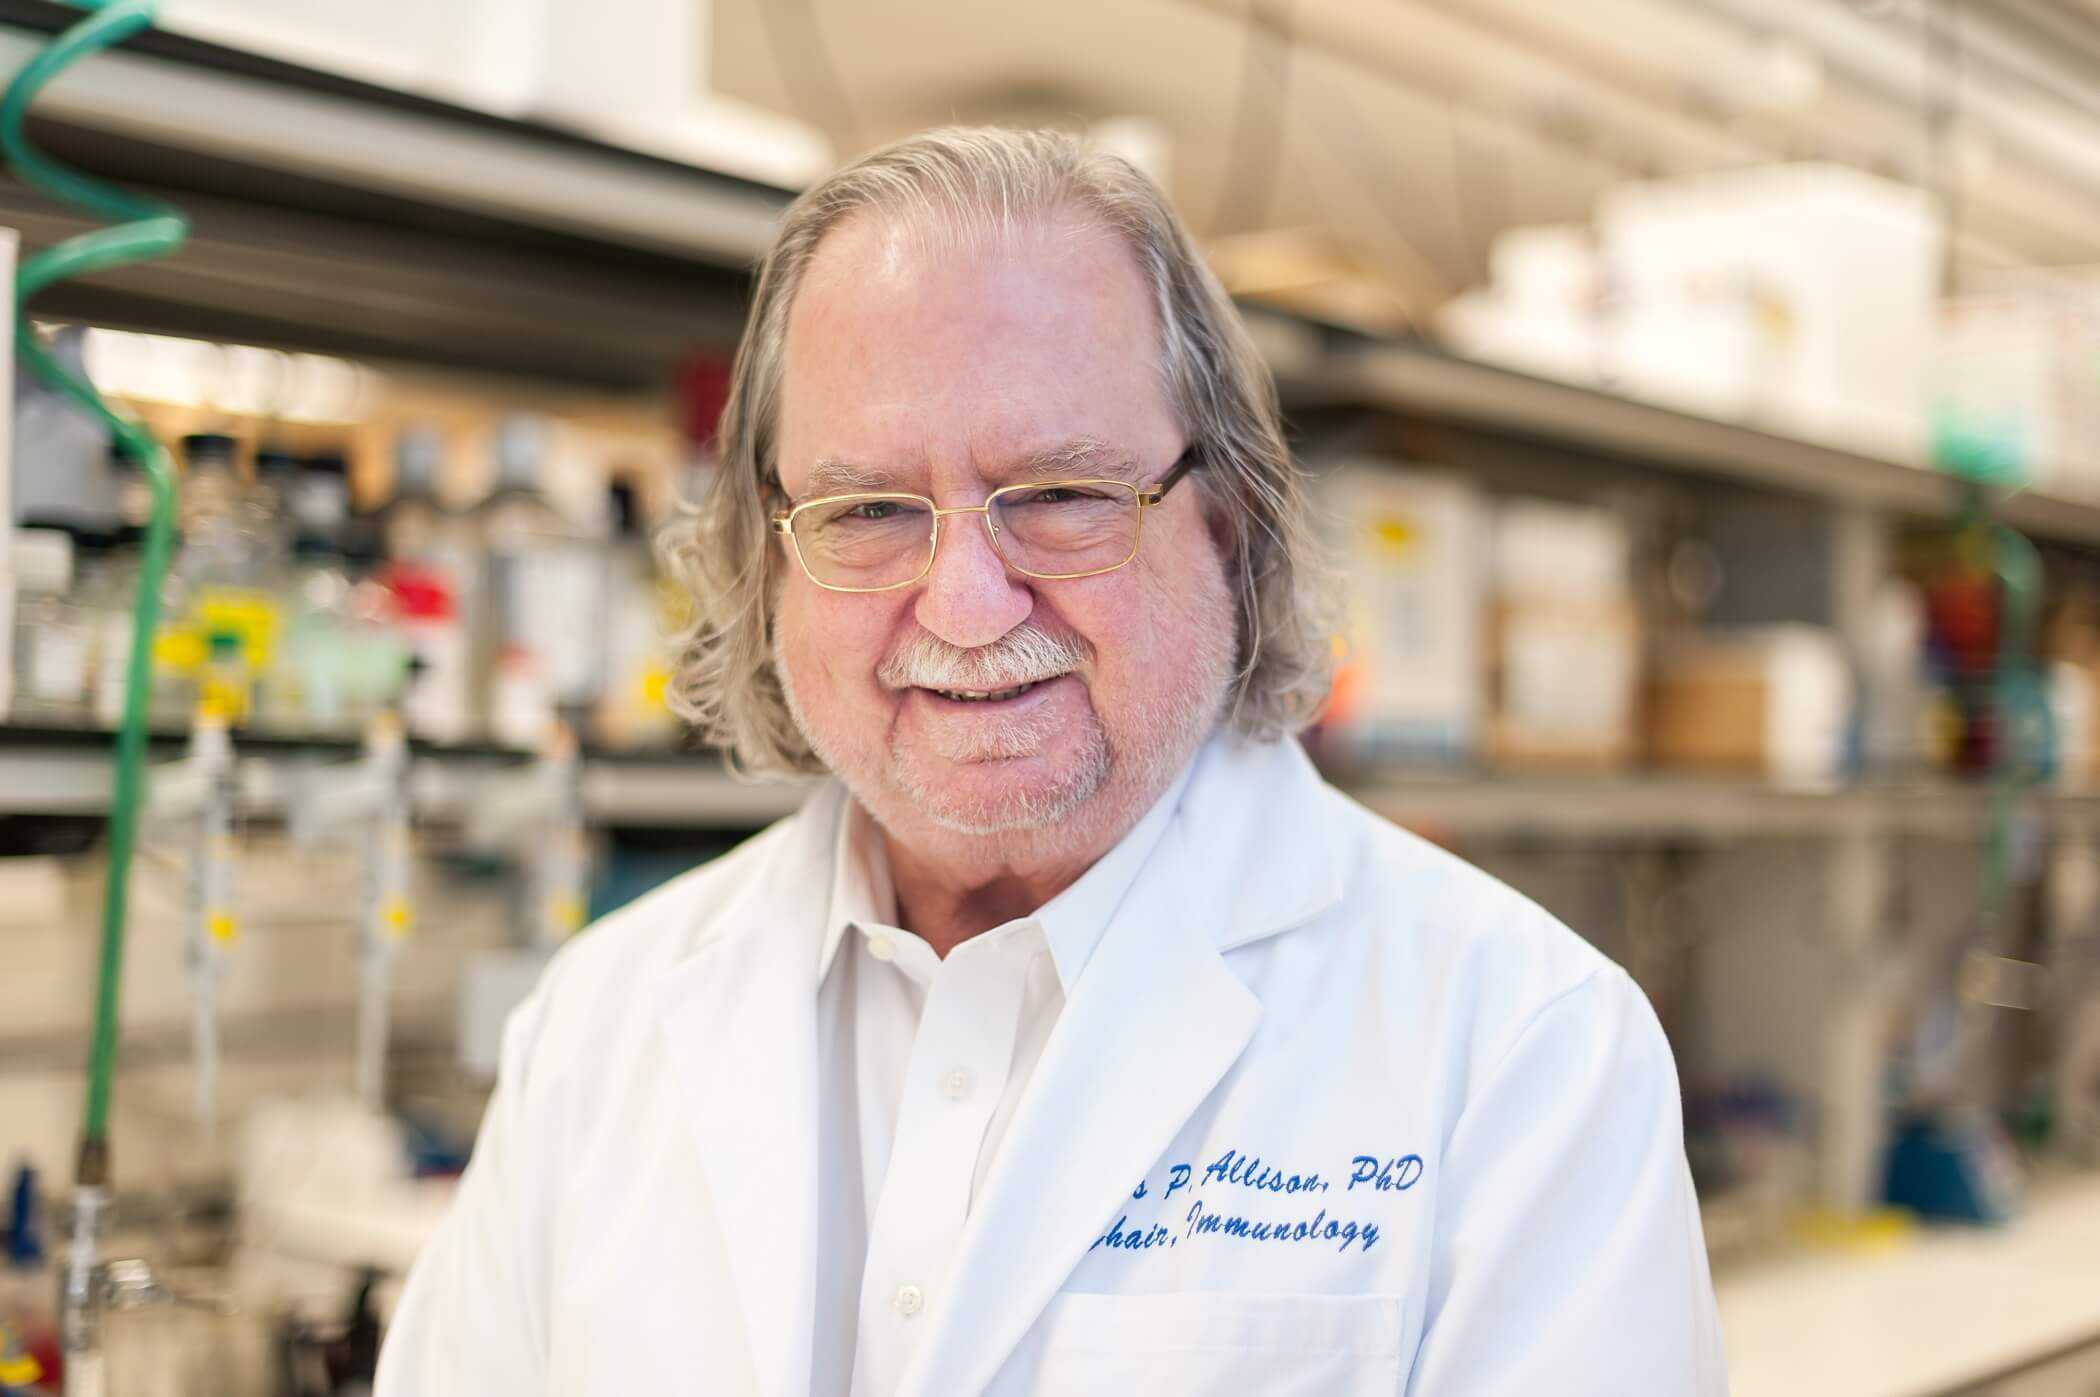 James P. Allison, Ph.D., in his laboratory (Courtesy of MD Anderson)